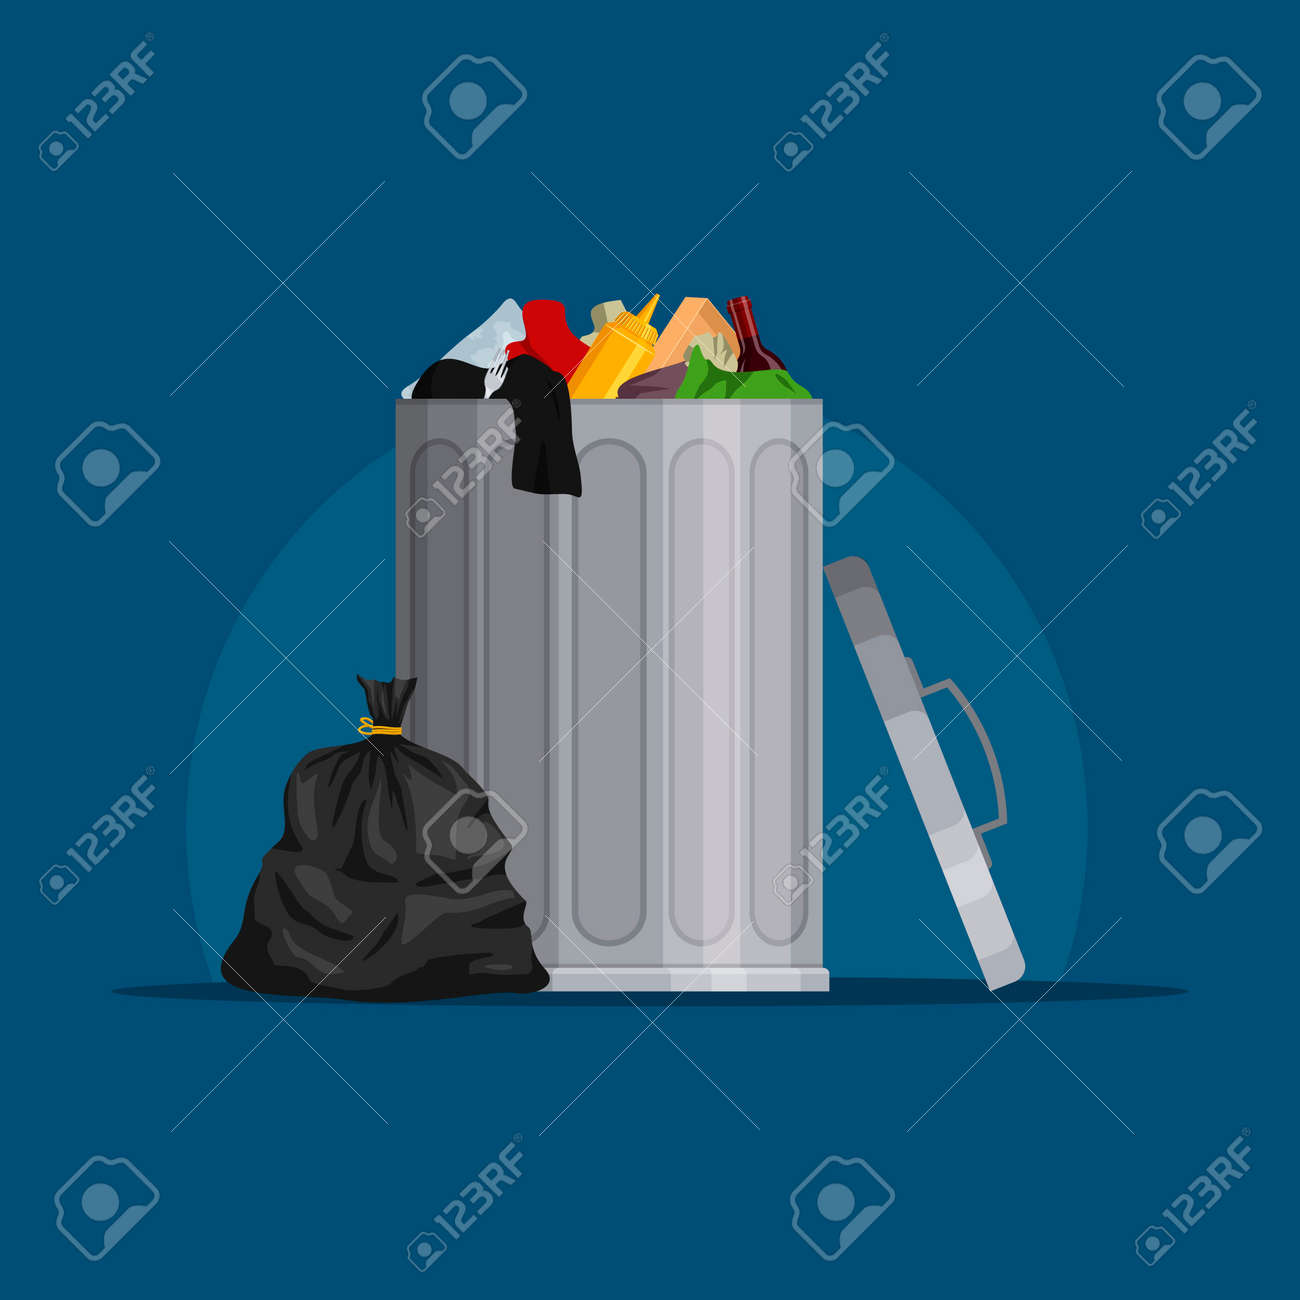 Steel garbage bin full of trash. Trash can with rubbish isolated on blue background. Wheelie bin and trash bag. Scene with pile of waste, Vector illustration - 162713208